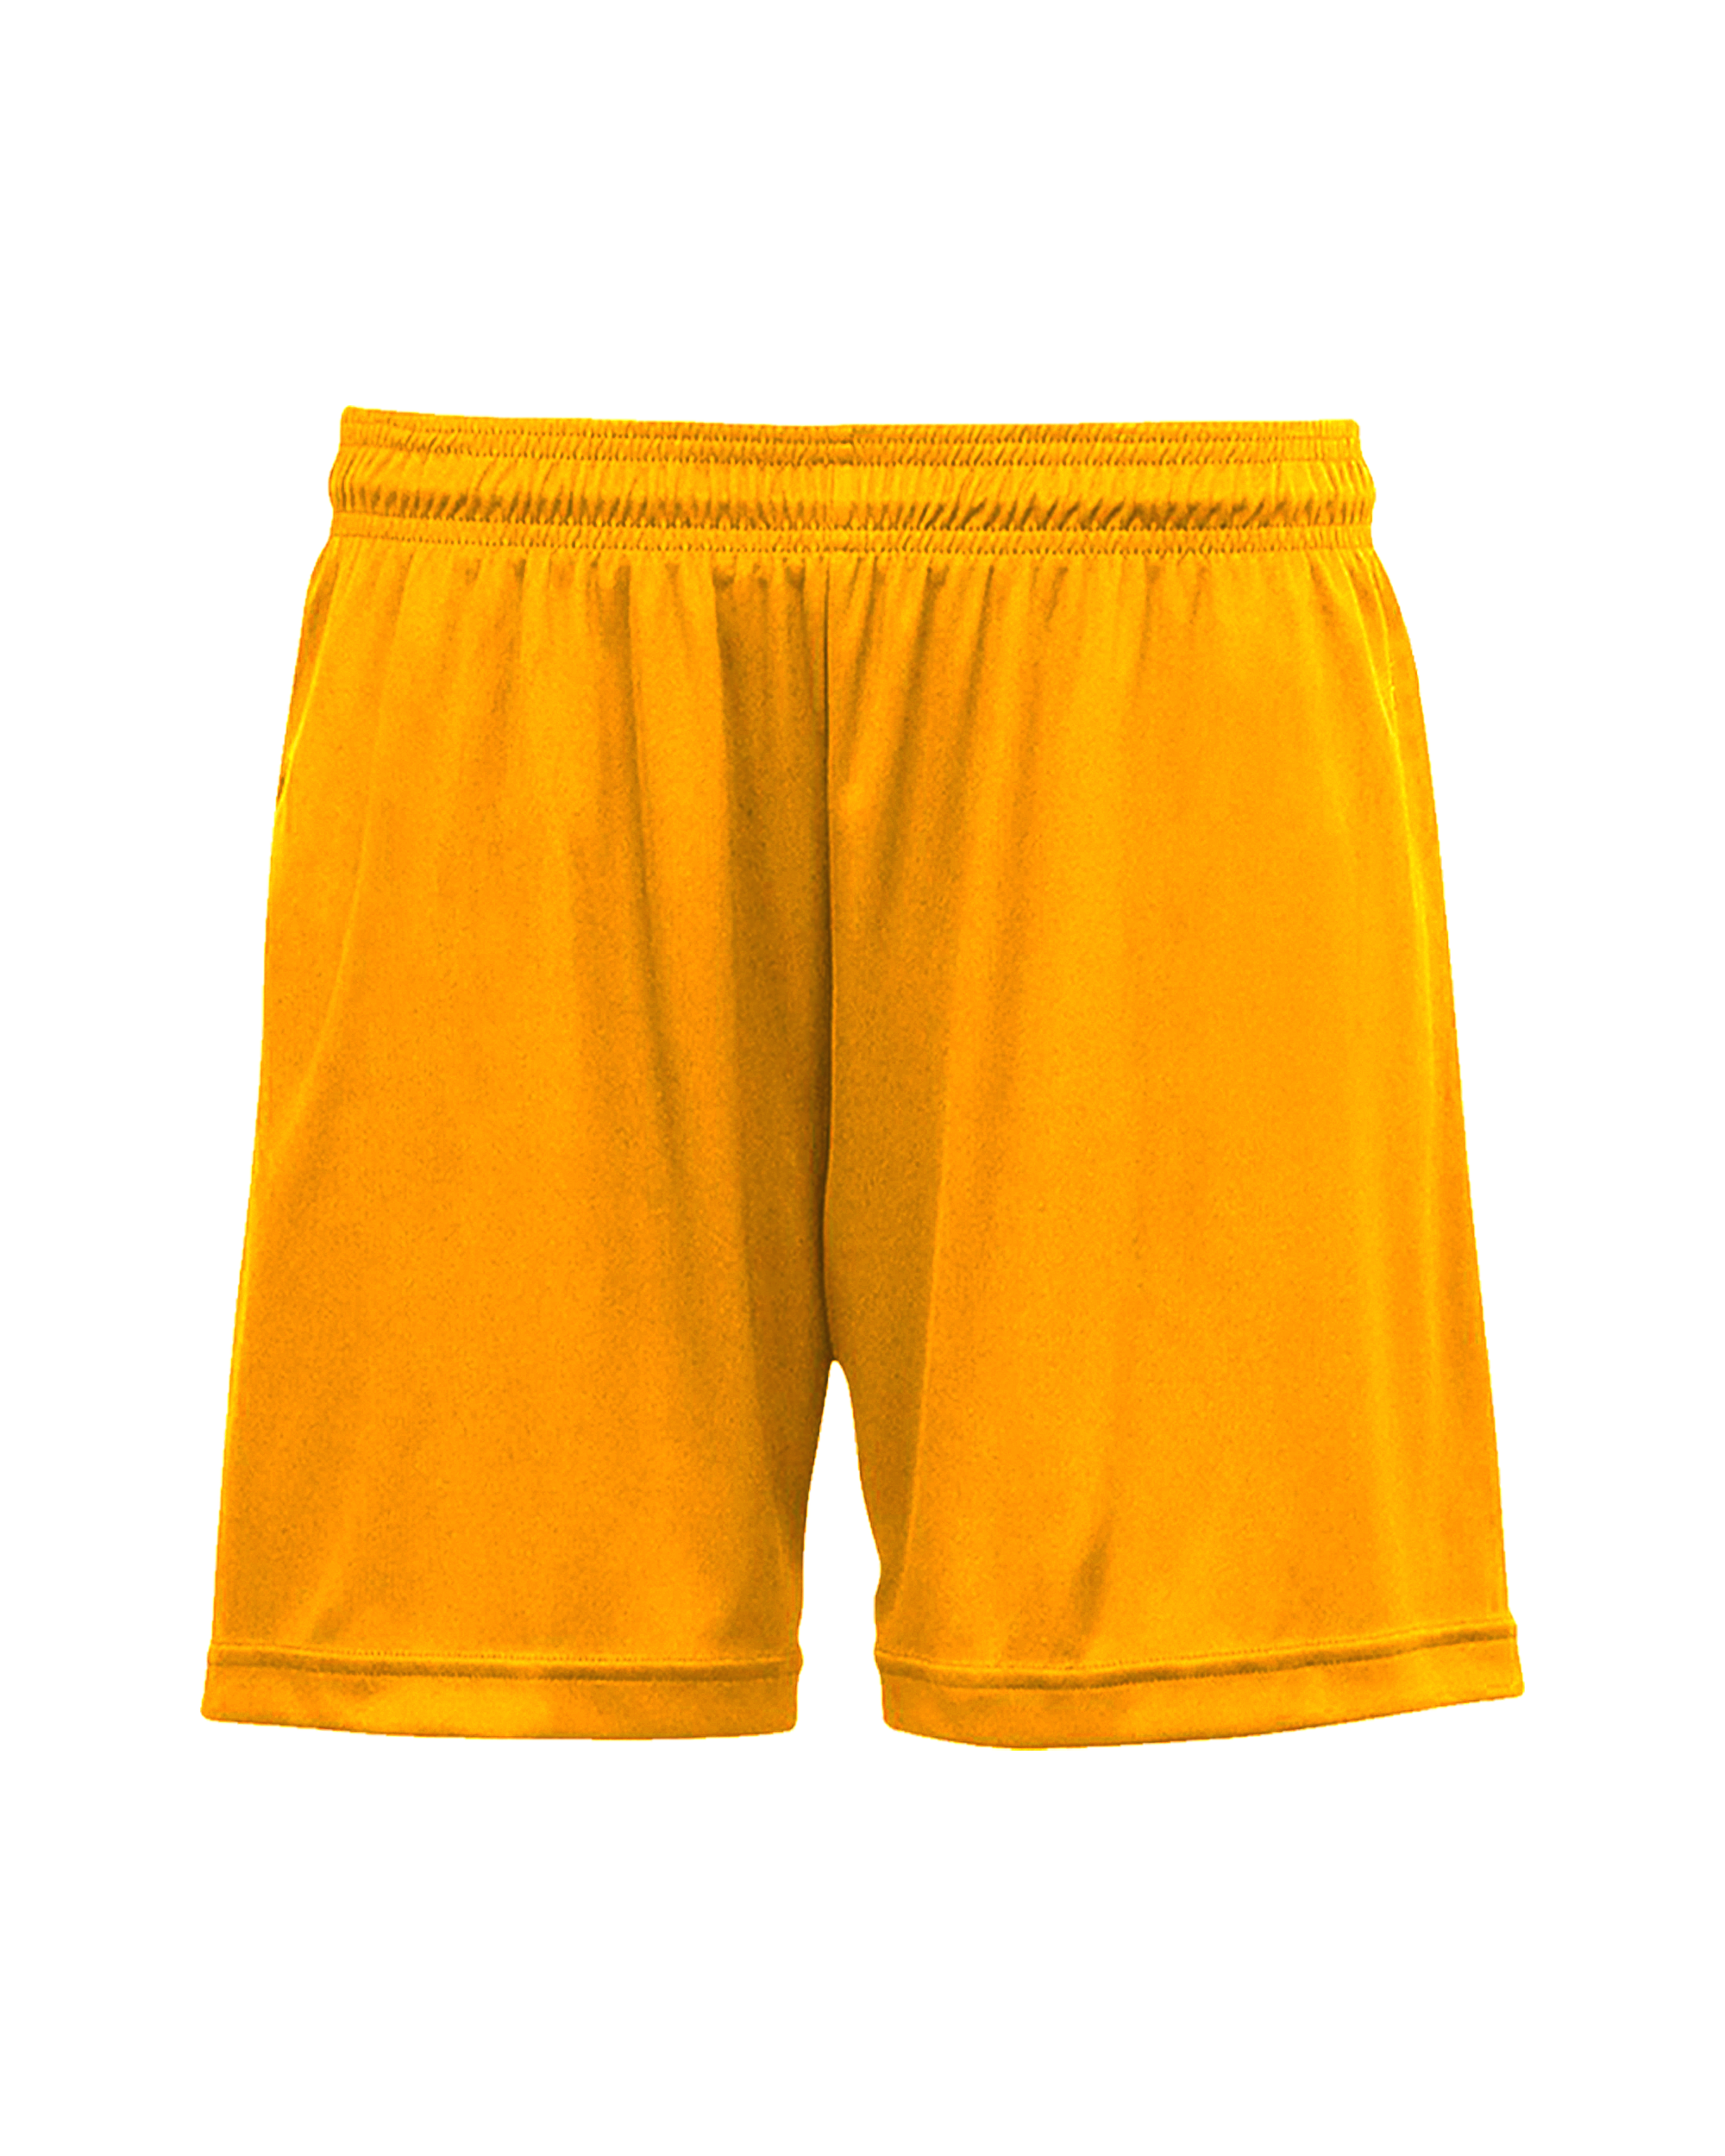 C2 Performance Women's Short - Gold